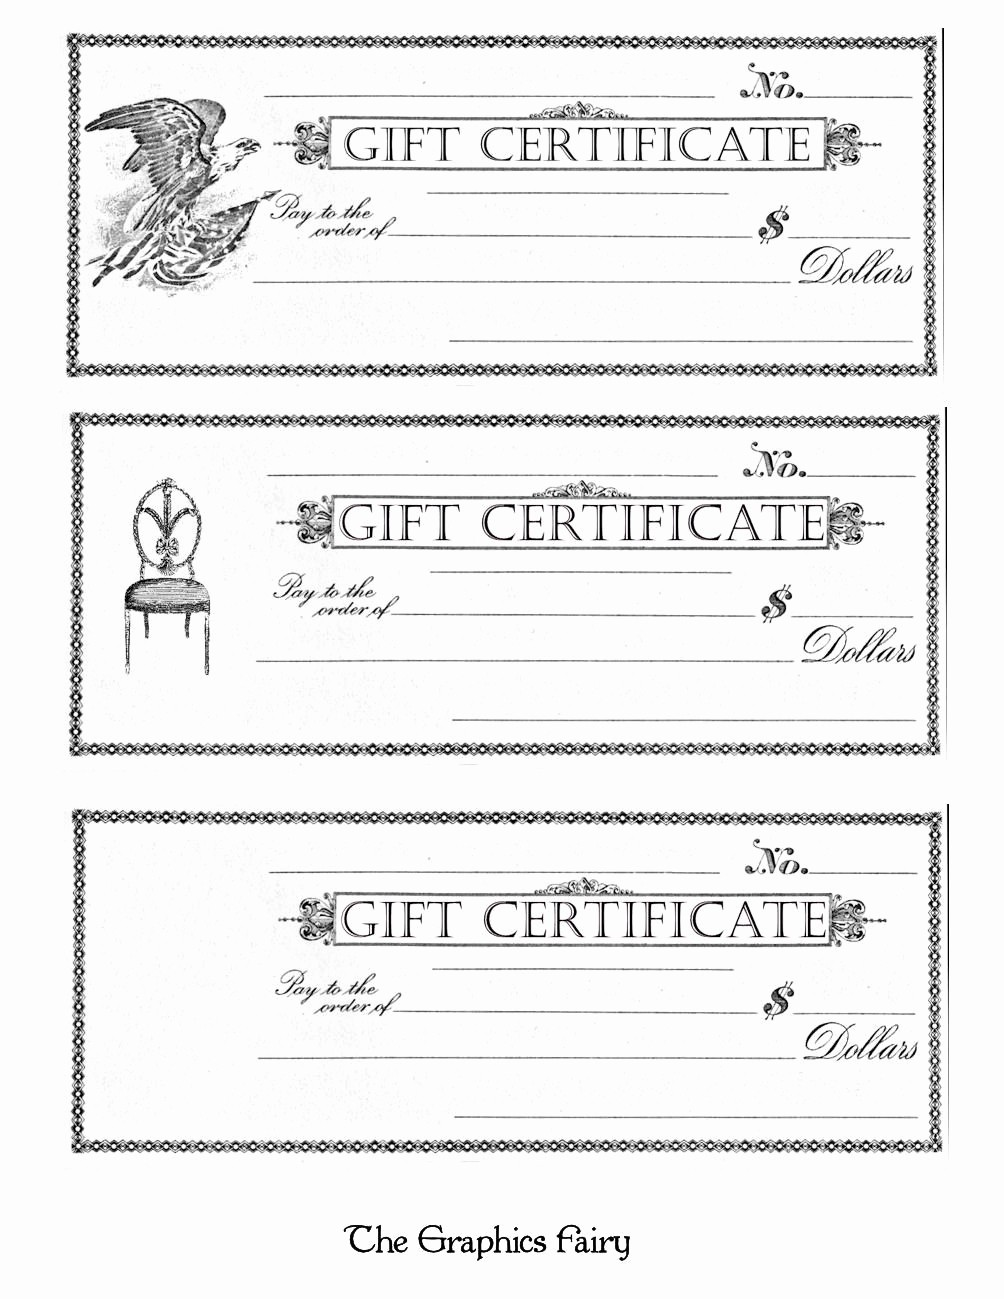 Blank Gift Certificates to Print Elegant Free Printable Gift Certificates the Graphics Fairy